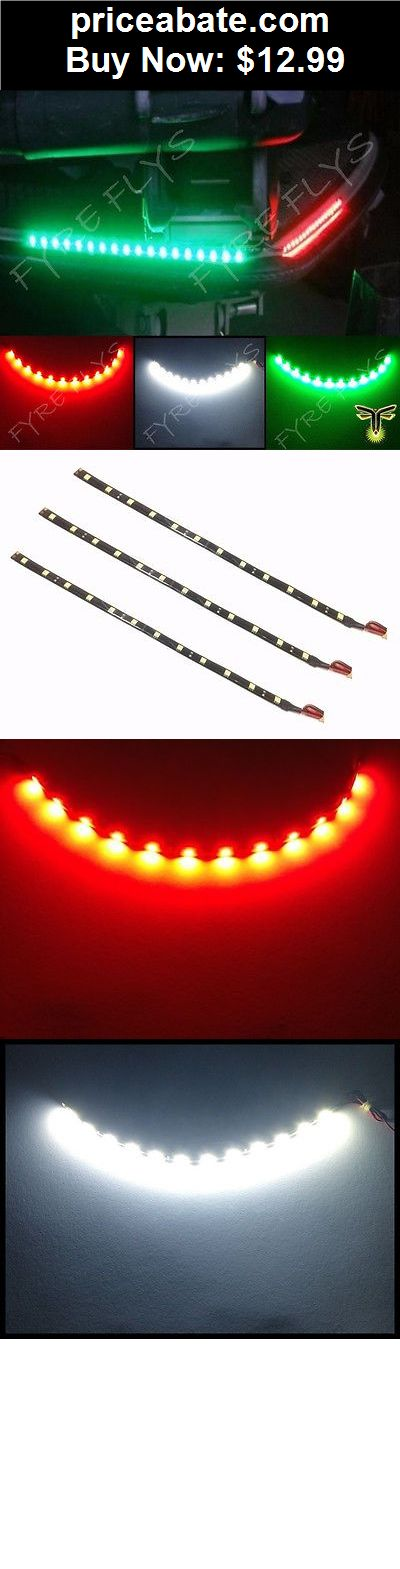 """Boat-Parts: 3x Boat Navigation LED Lighting RED,GREEN,WHITE 12"""" Waterproof Marine LED Strips - BUY IT NOW ONLY $12.99"""